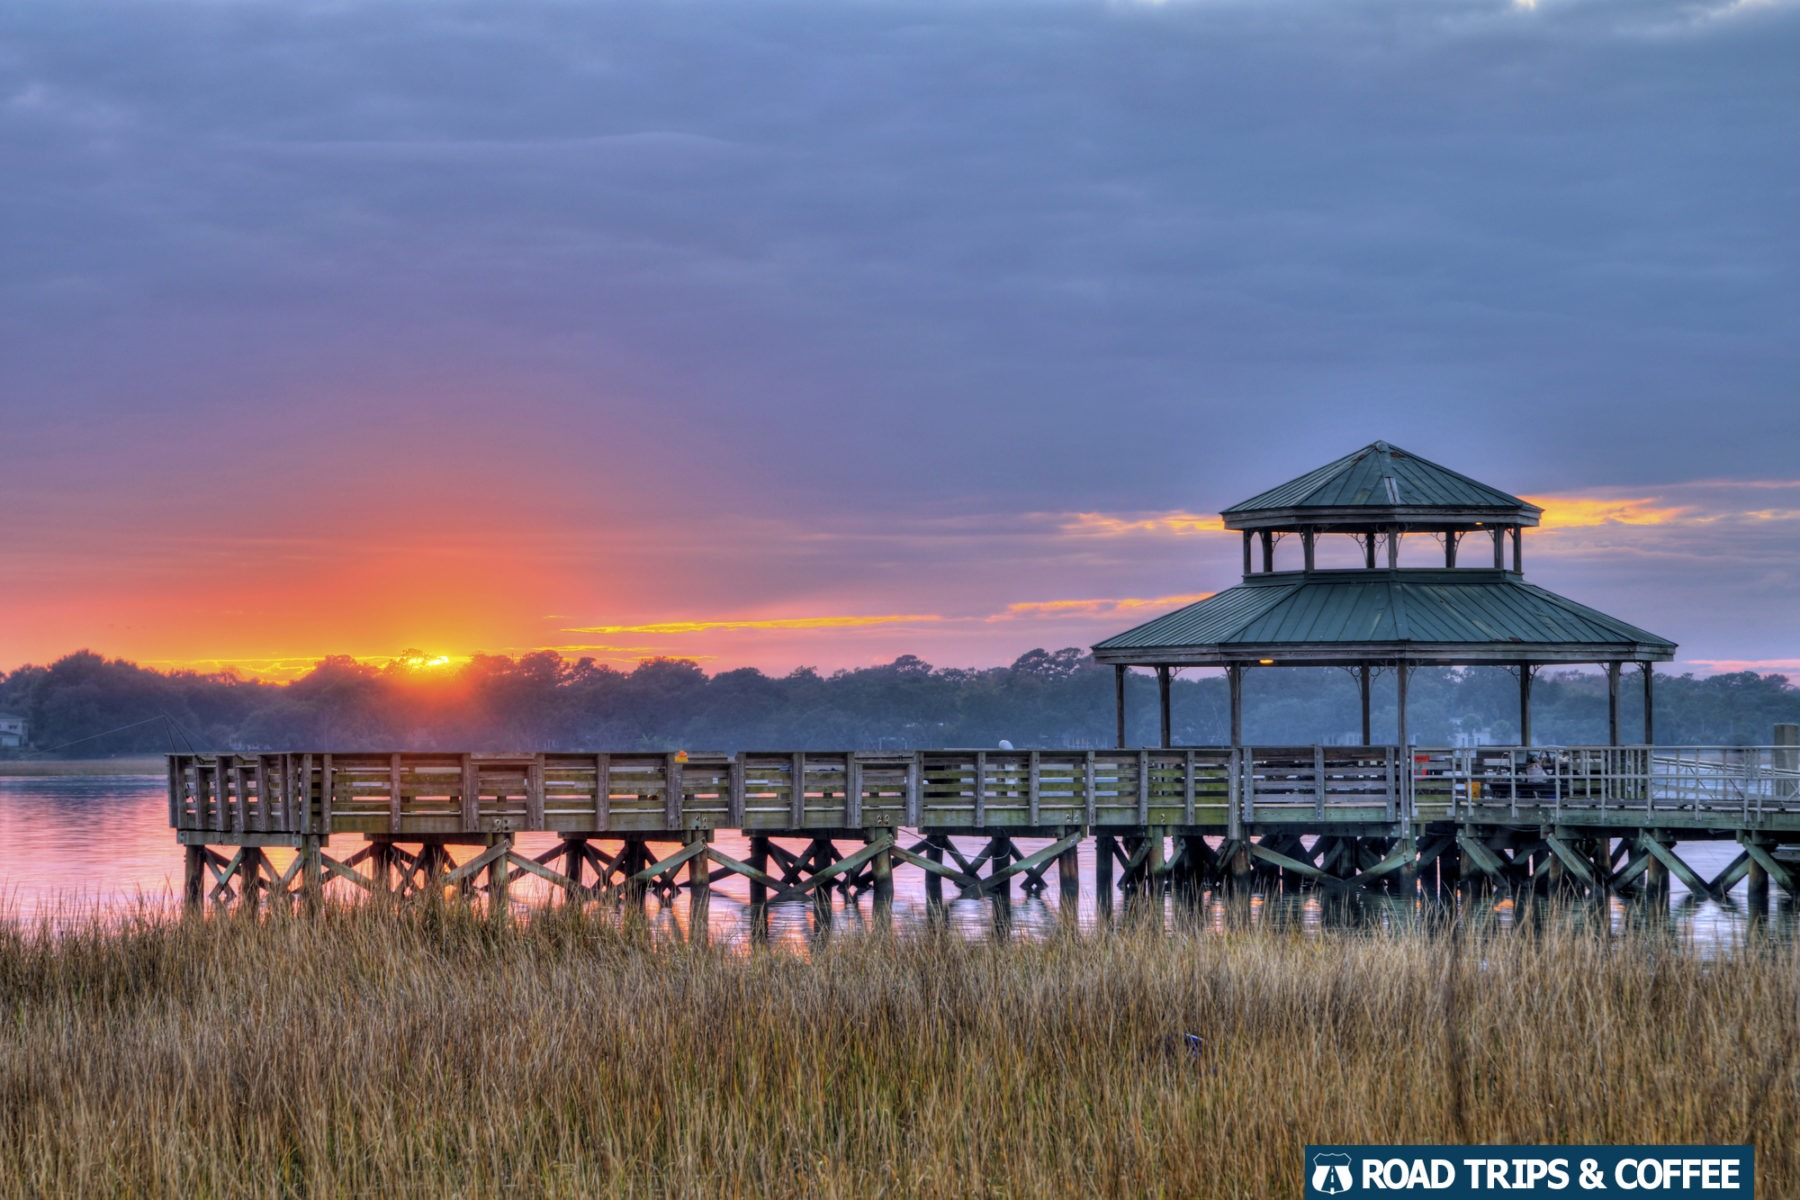 Sunset across the Ashley River at Brittlebank Park in Charleston, South Carolina